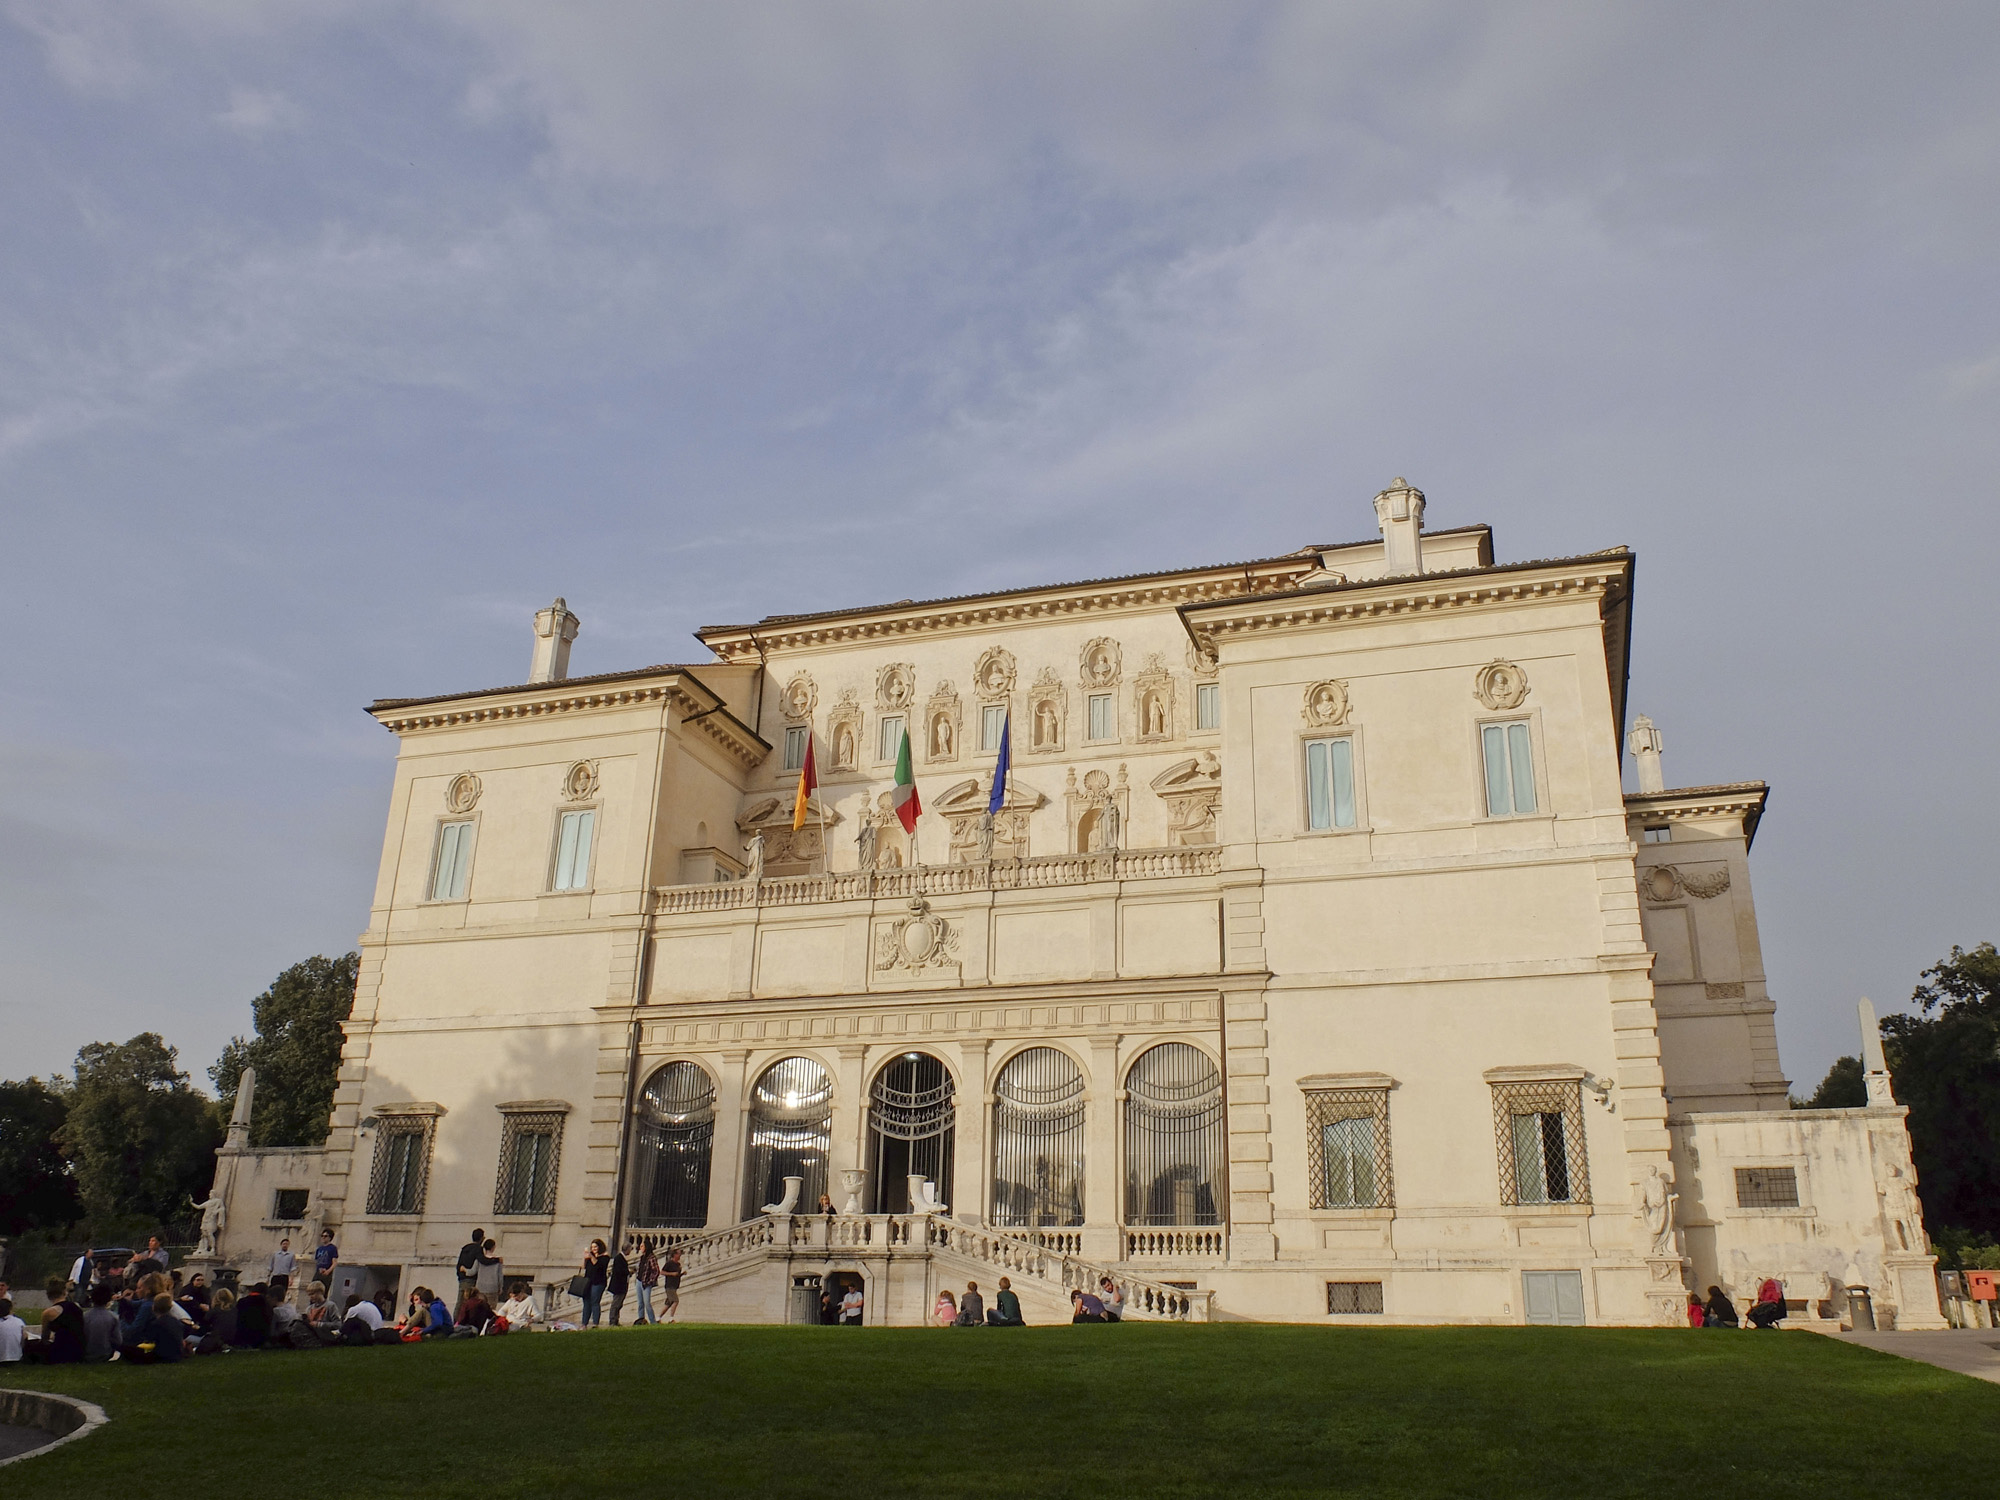 The villa that became the Borghese Gallery